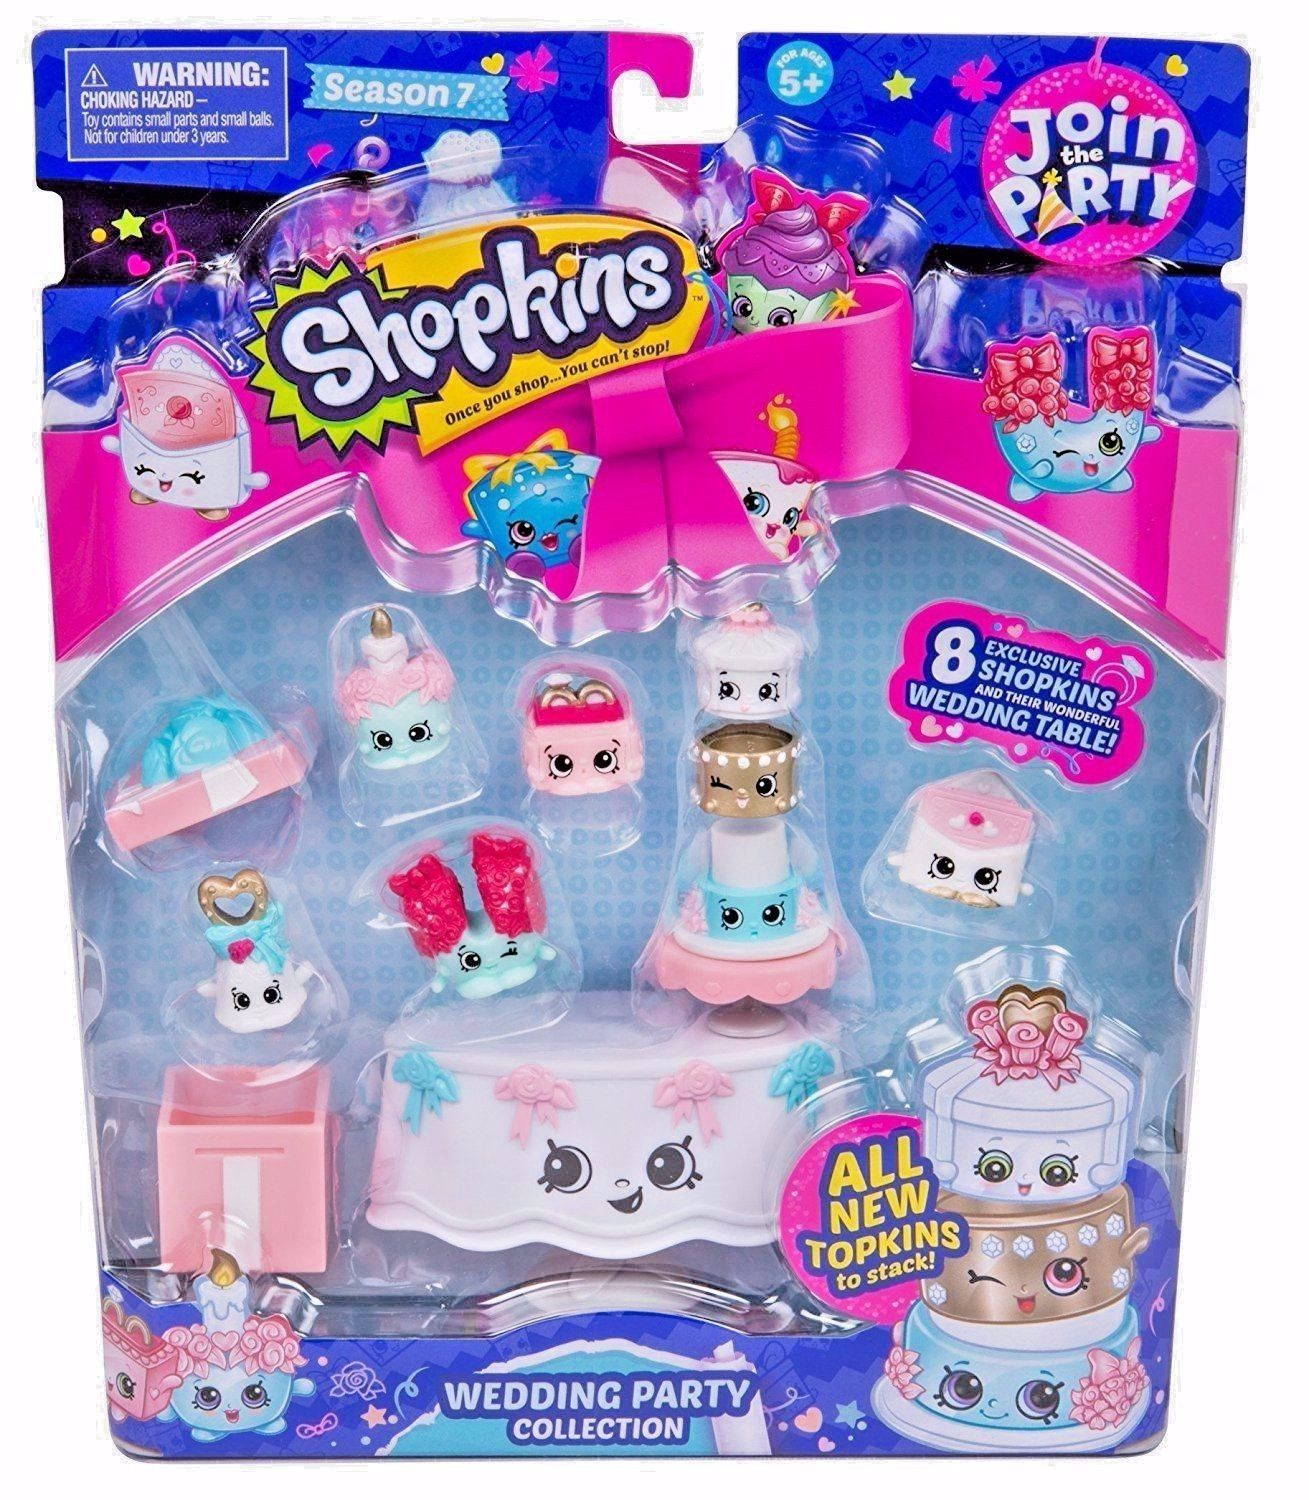 Shopkins Season 7 Princess Party Collection Including Topkins